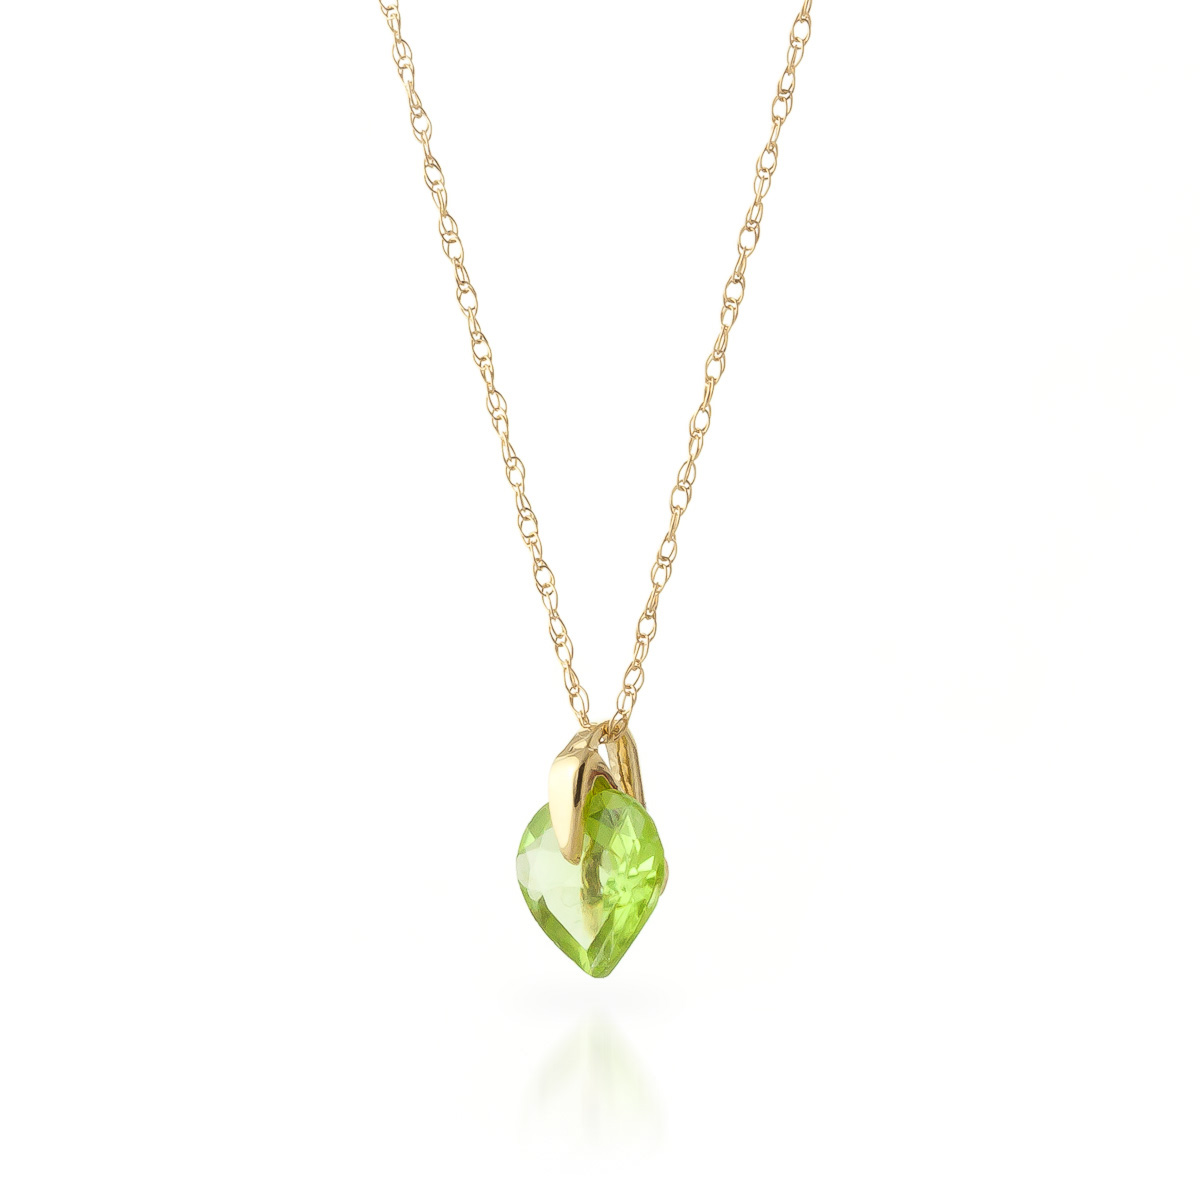 p necklaces peridot in yellow bezel solitaire set necklace to round zoom thumbnail gold tap